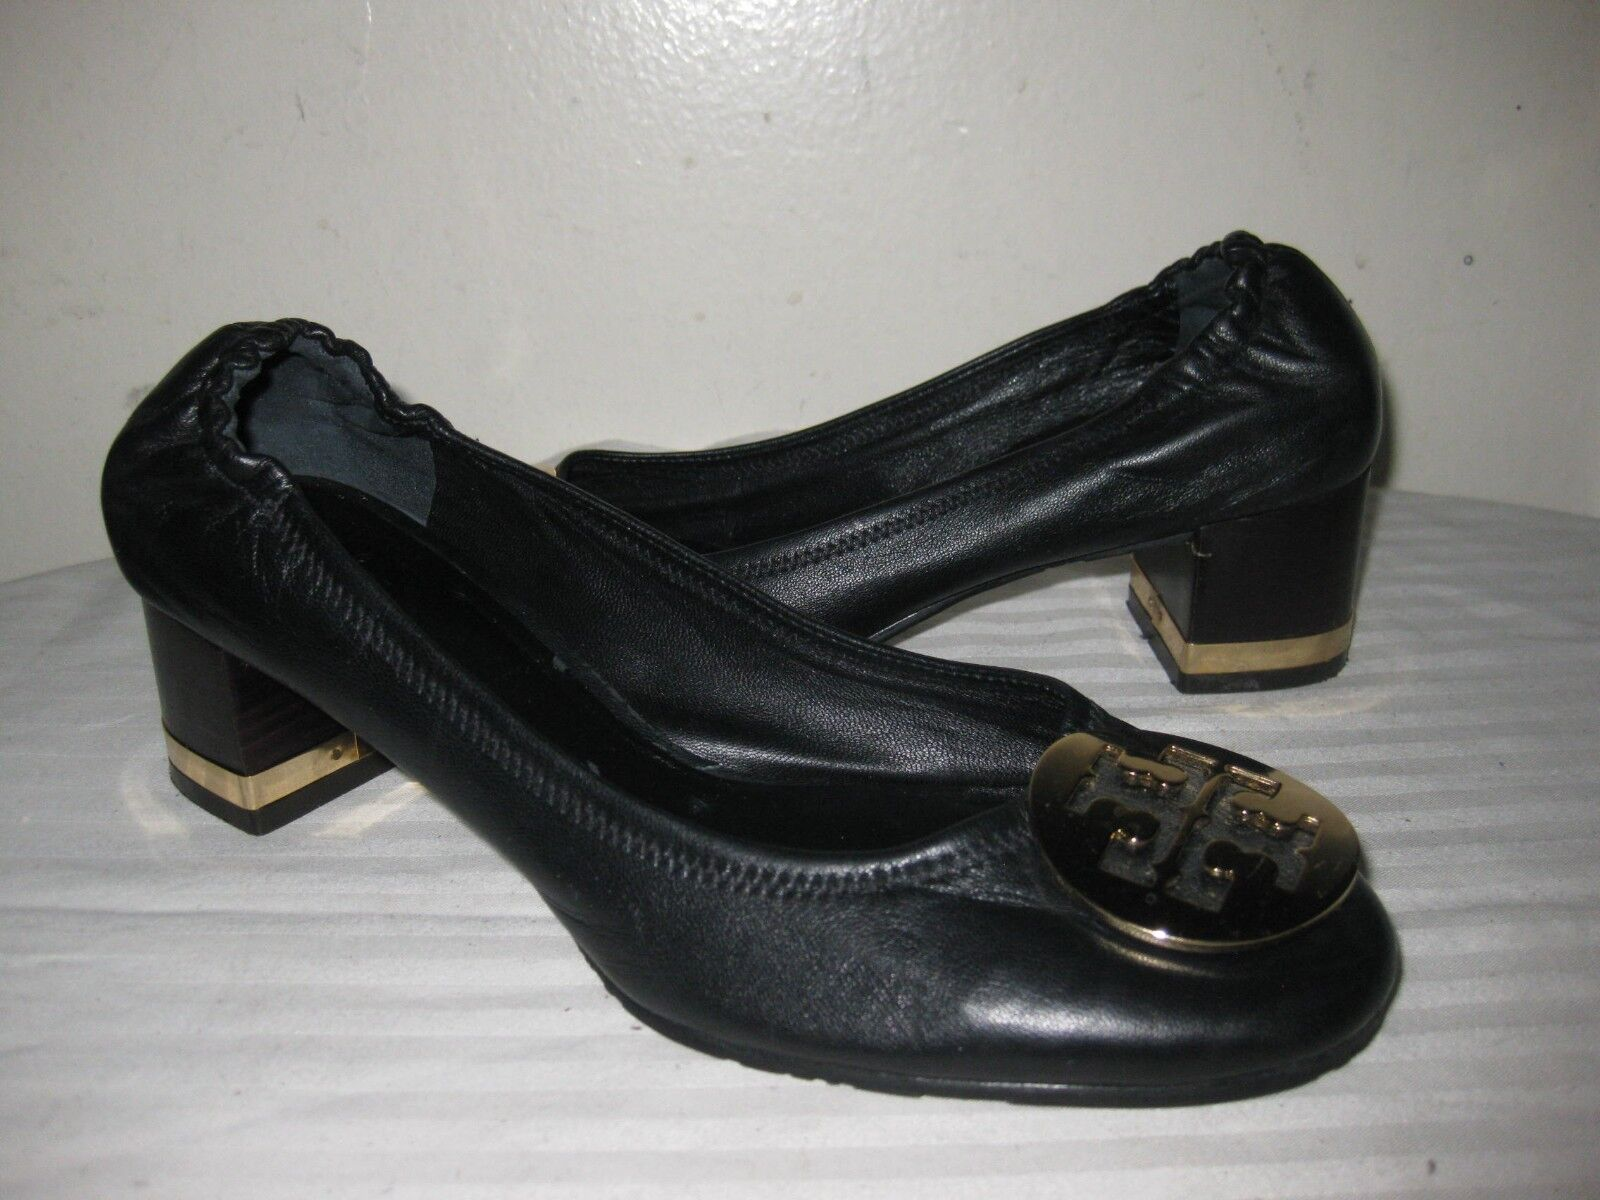 Tory Burch Leather Black Pump gold Logo Heel shoes Women Size 6.5 M